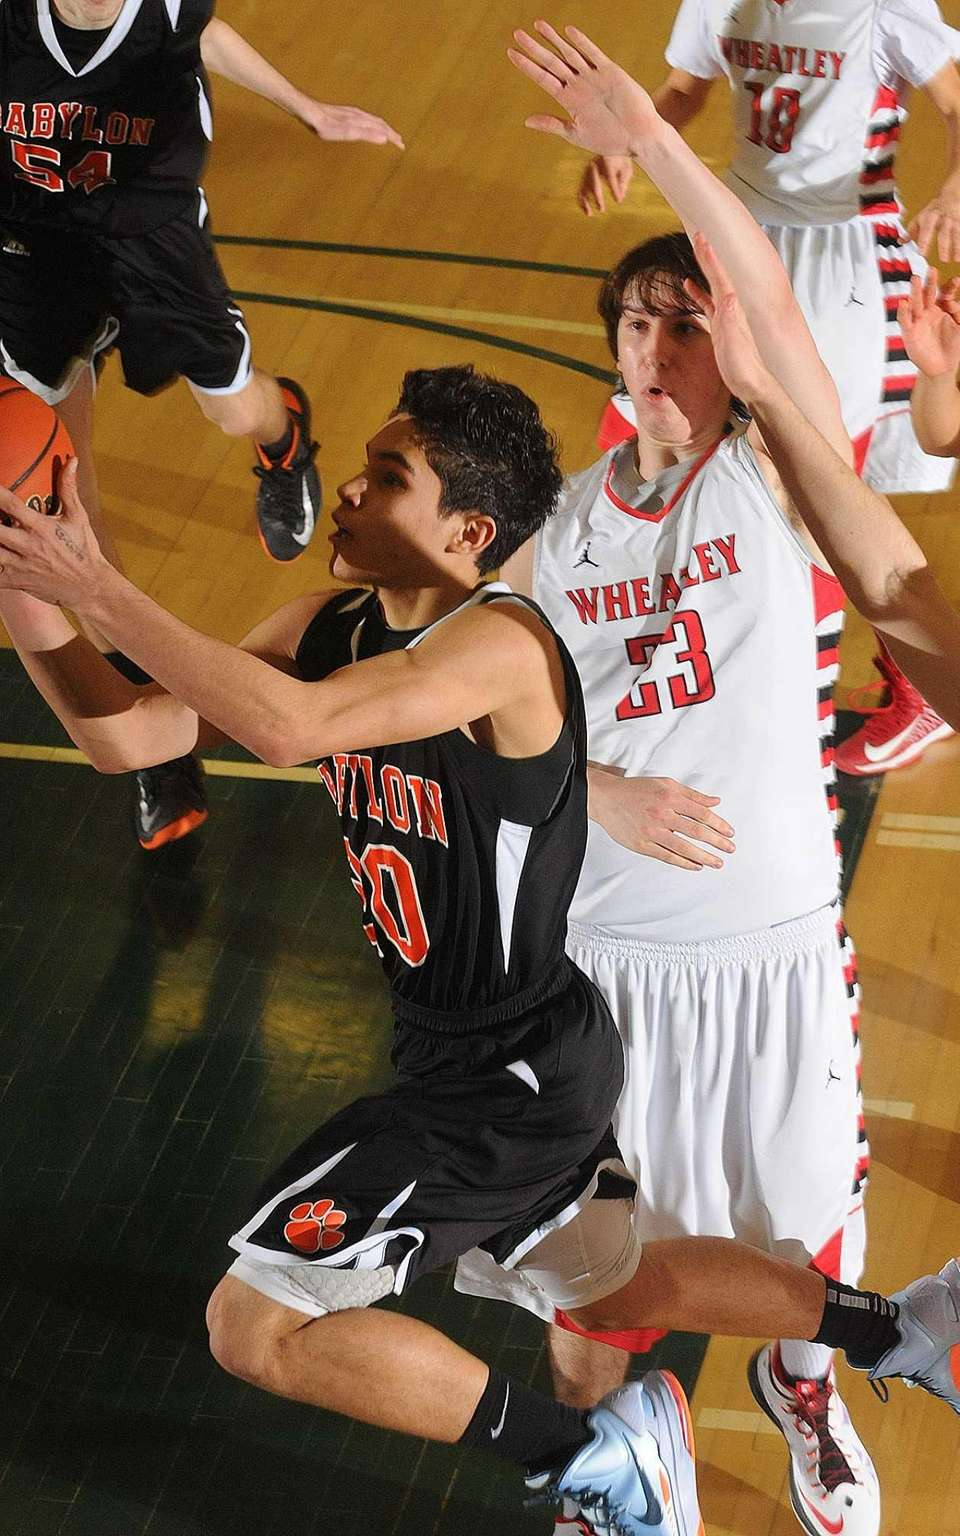 Babylon's Fernando Vazquez drives past Wheatley's Sam Fieldman